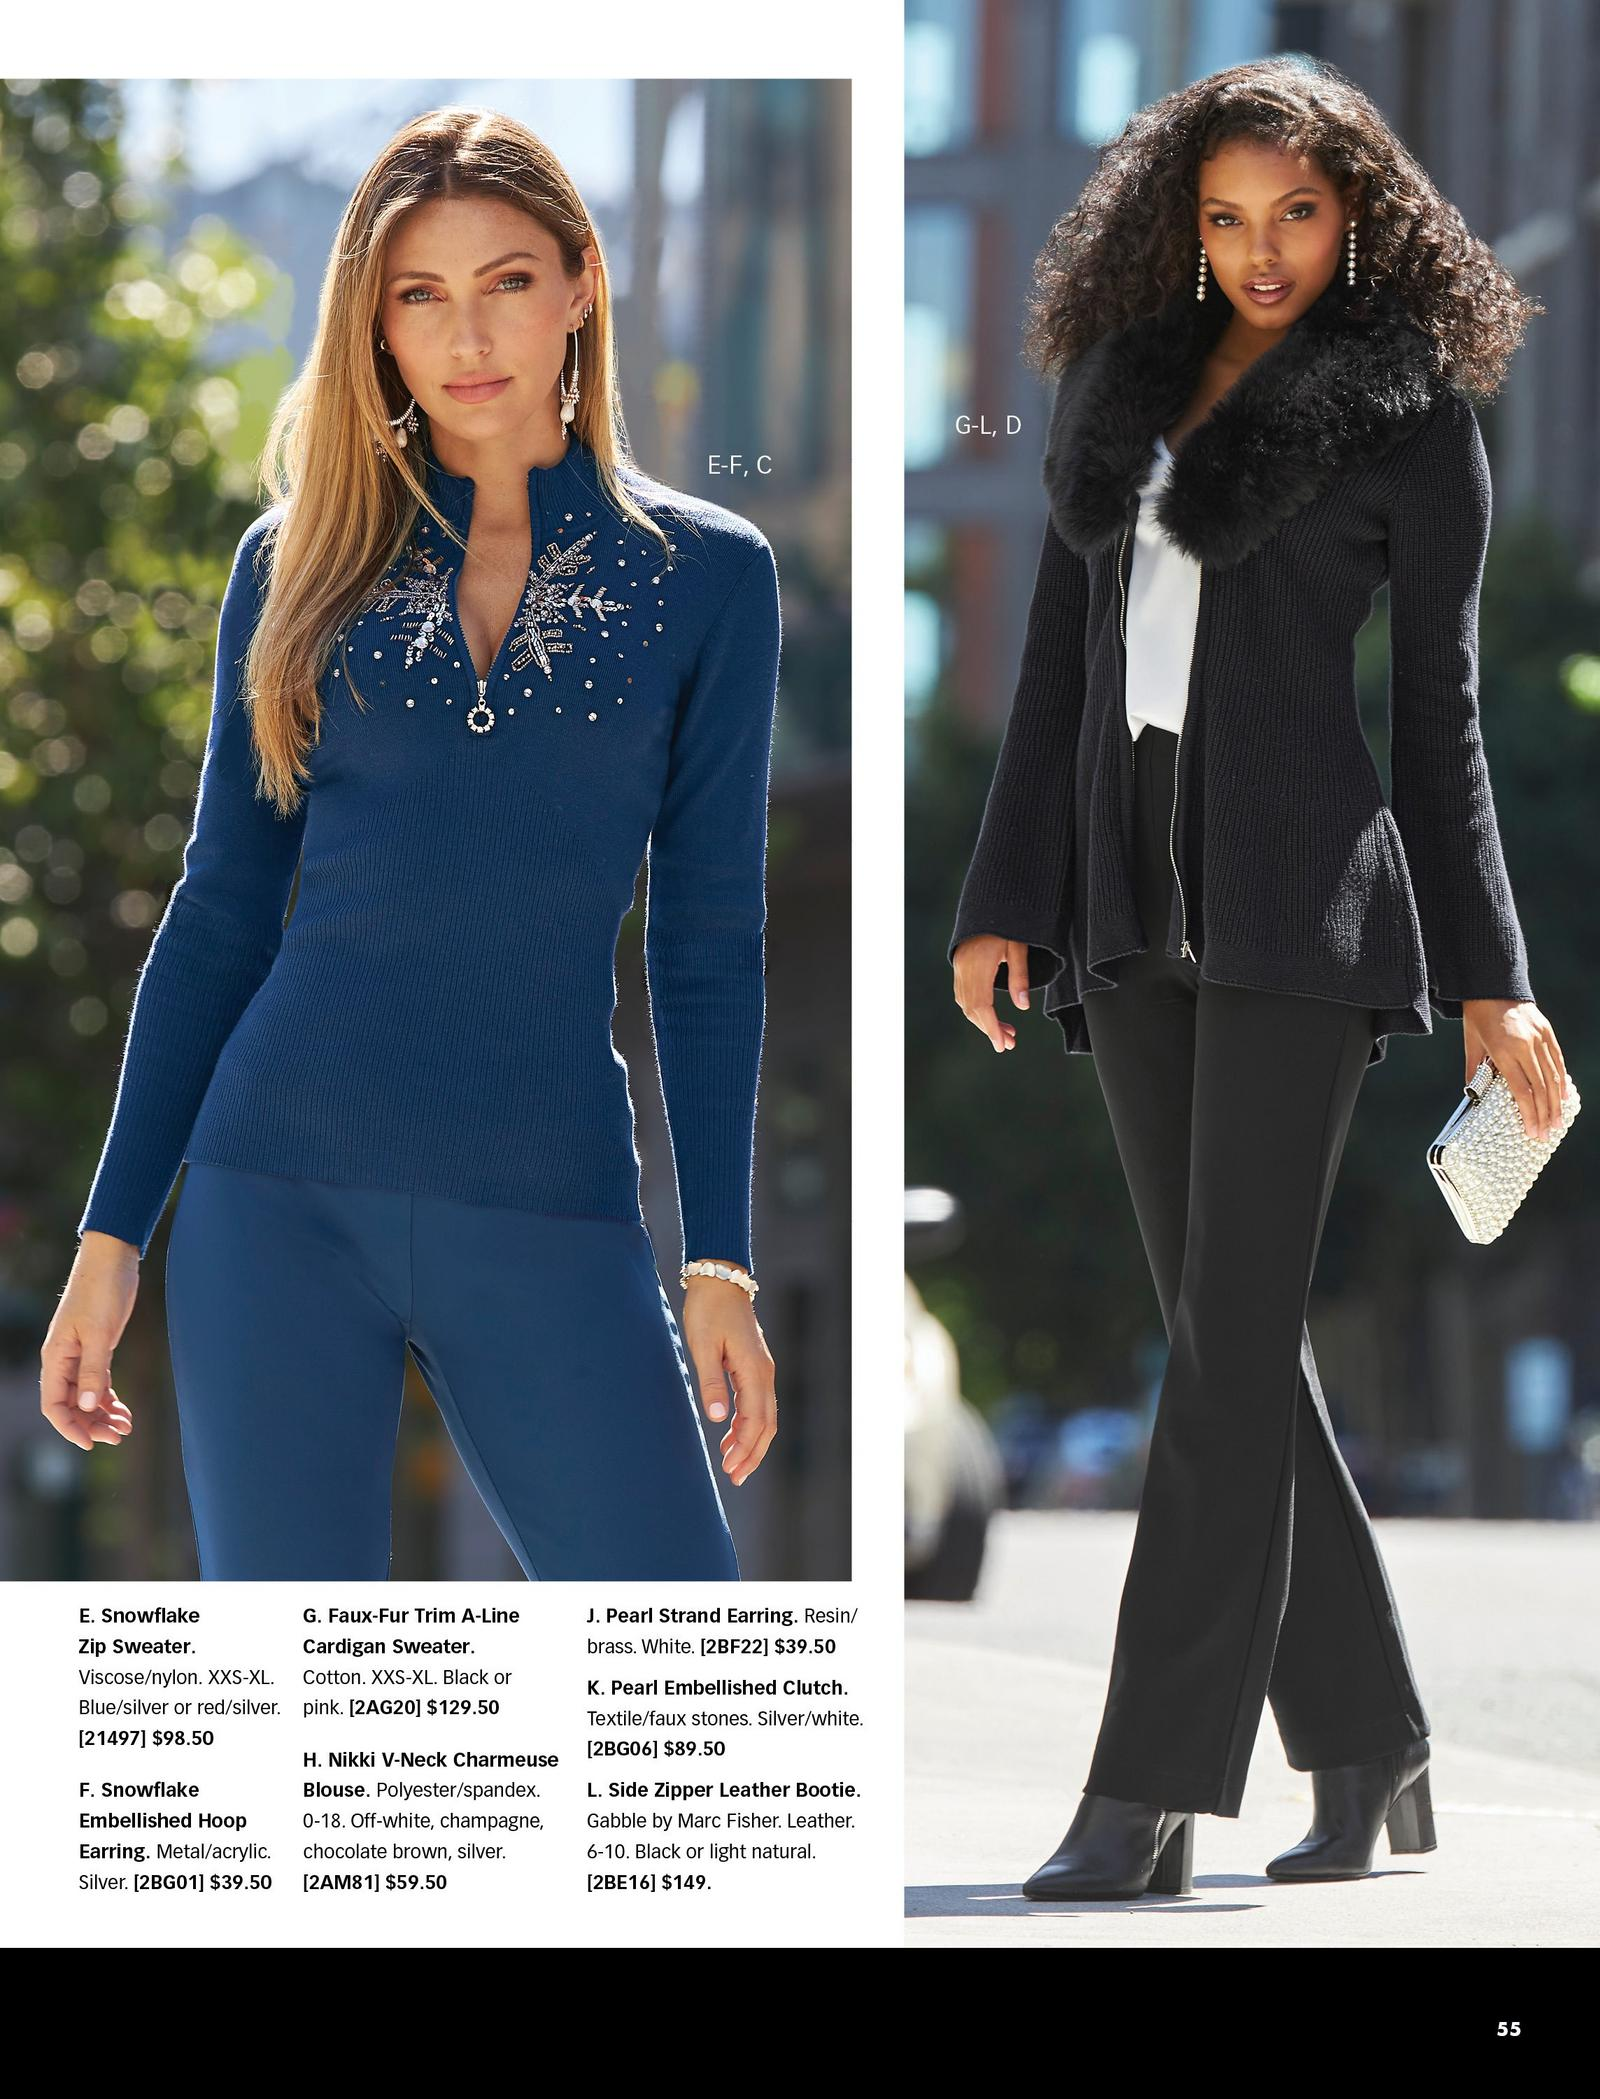 left model wearing a navy snowflake half zip sweater and navy straight leg pants. right model wearing a black faux-fur trim sweater cardigan, white v-neck top, black straight leg pants, black leather booties, pearl strand earrings, and holding pearl embellished clutch.